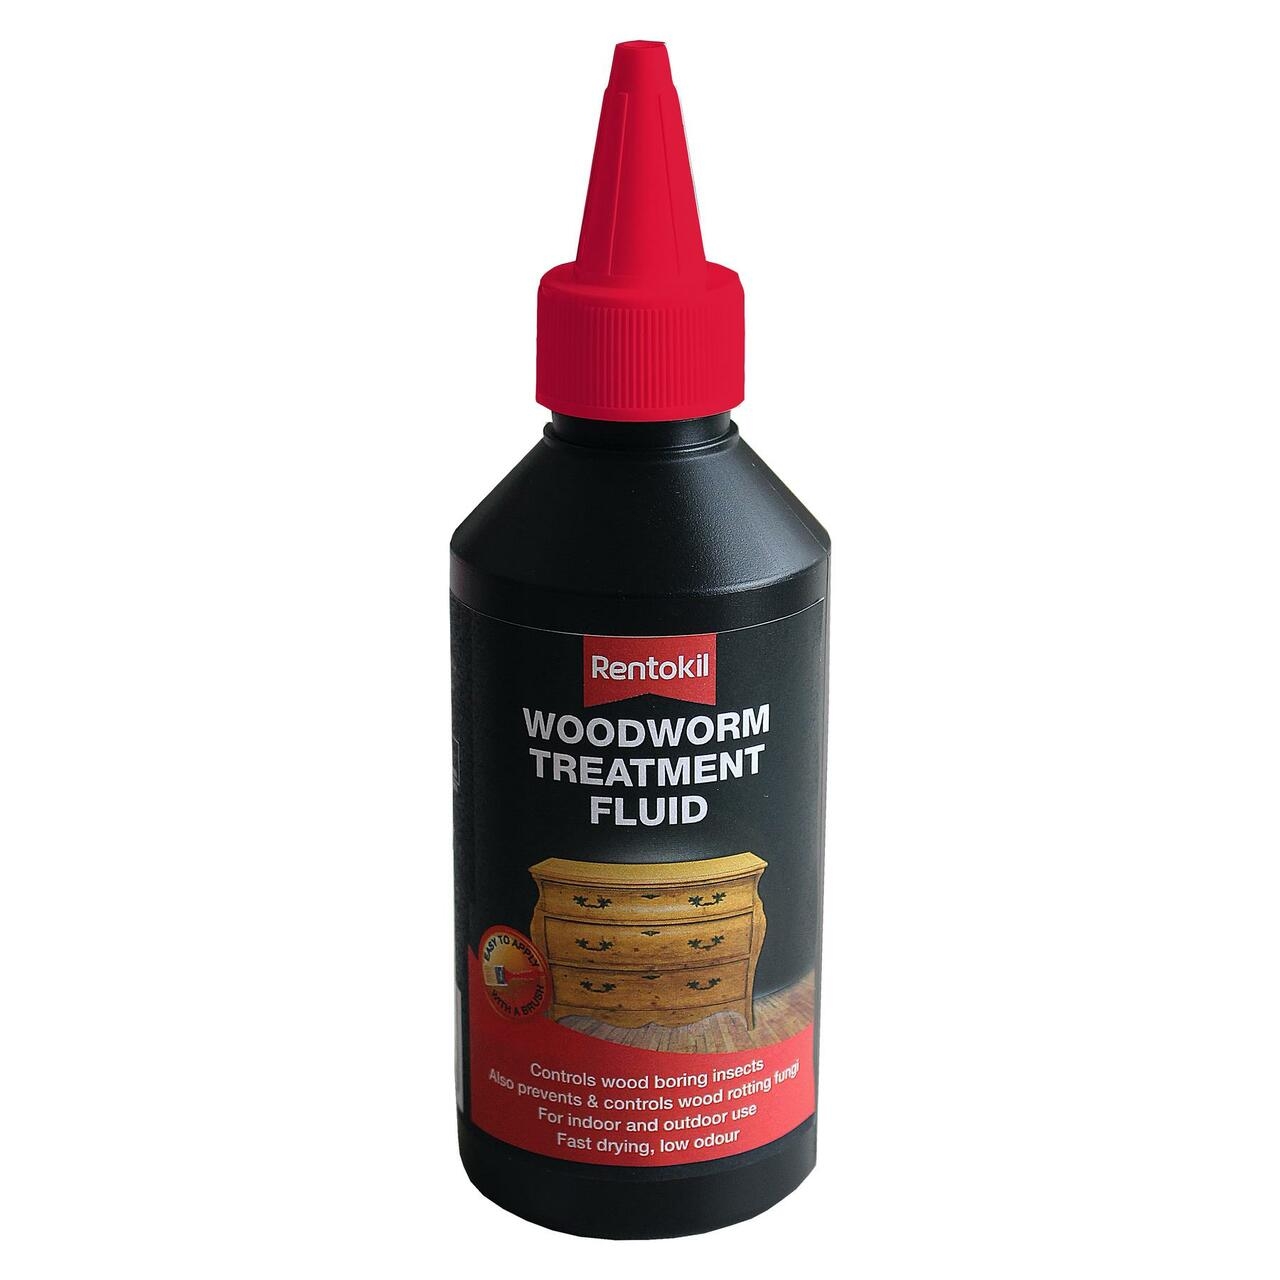 Rentokil Woodworm Wood Boring Insect Treatment Fluid, Indoor/Outdoor Use  250ml